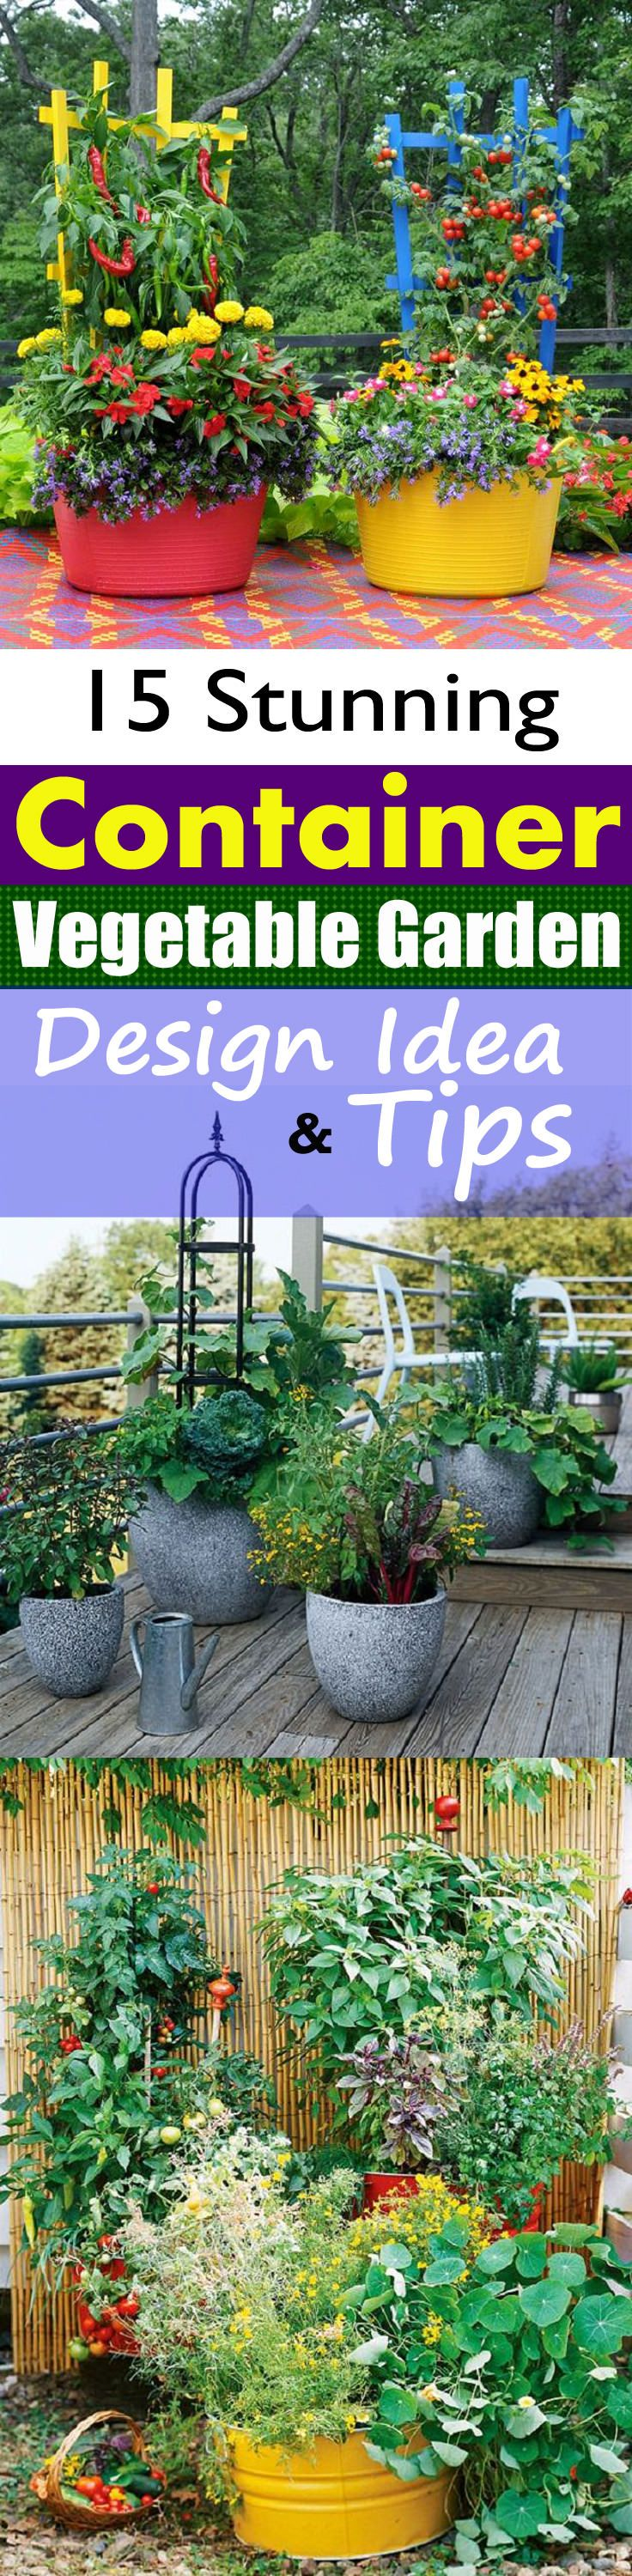 15 stunning container vegetable garden design ideas tips - Vegetable Garden Design Ideas